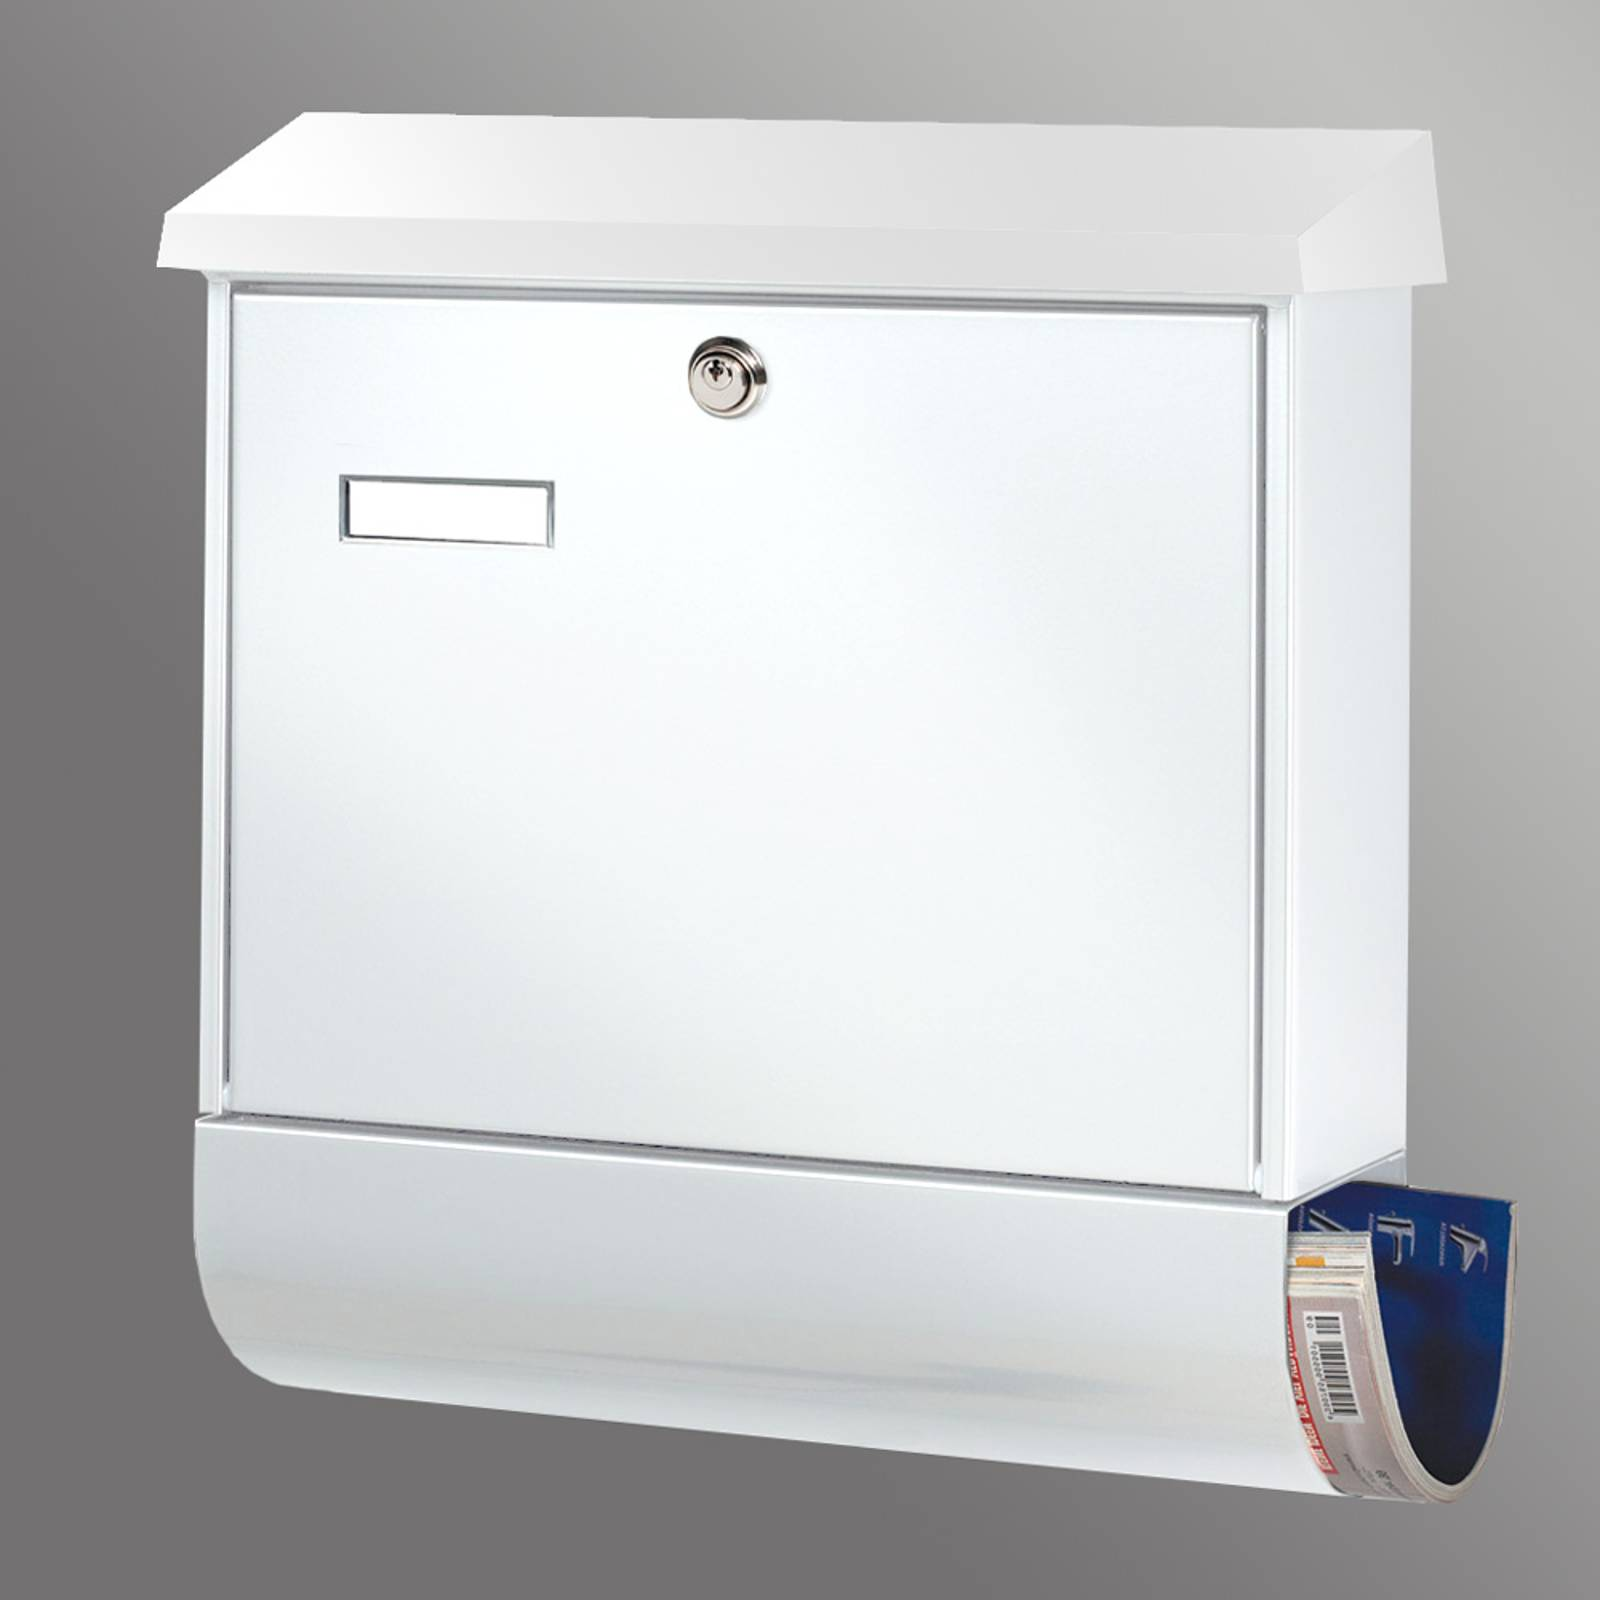 Popular letter box Set Vario, white from Burgwächter